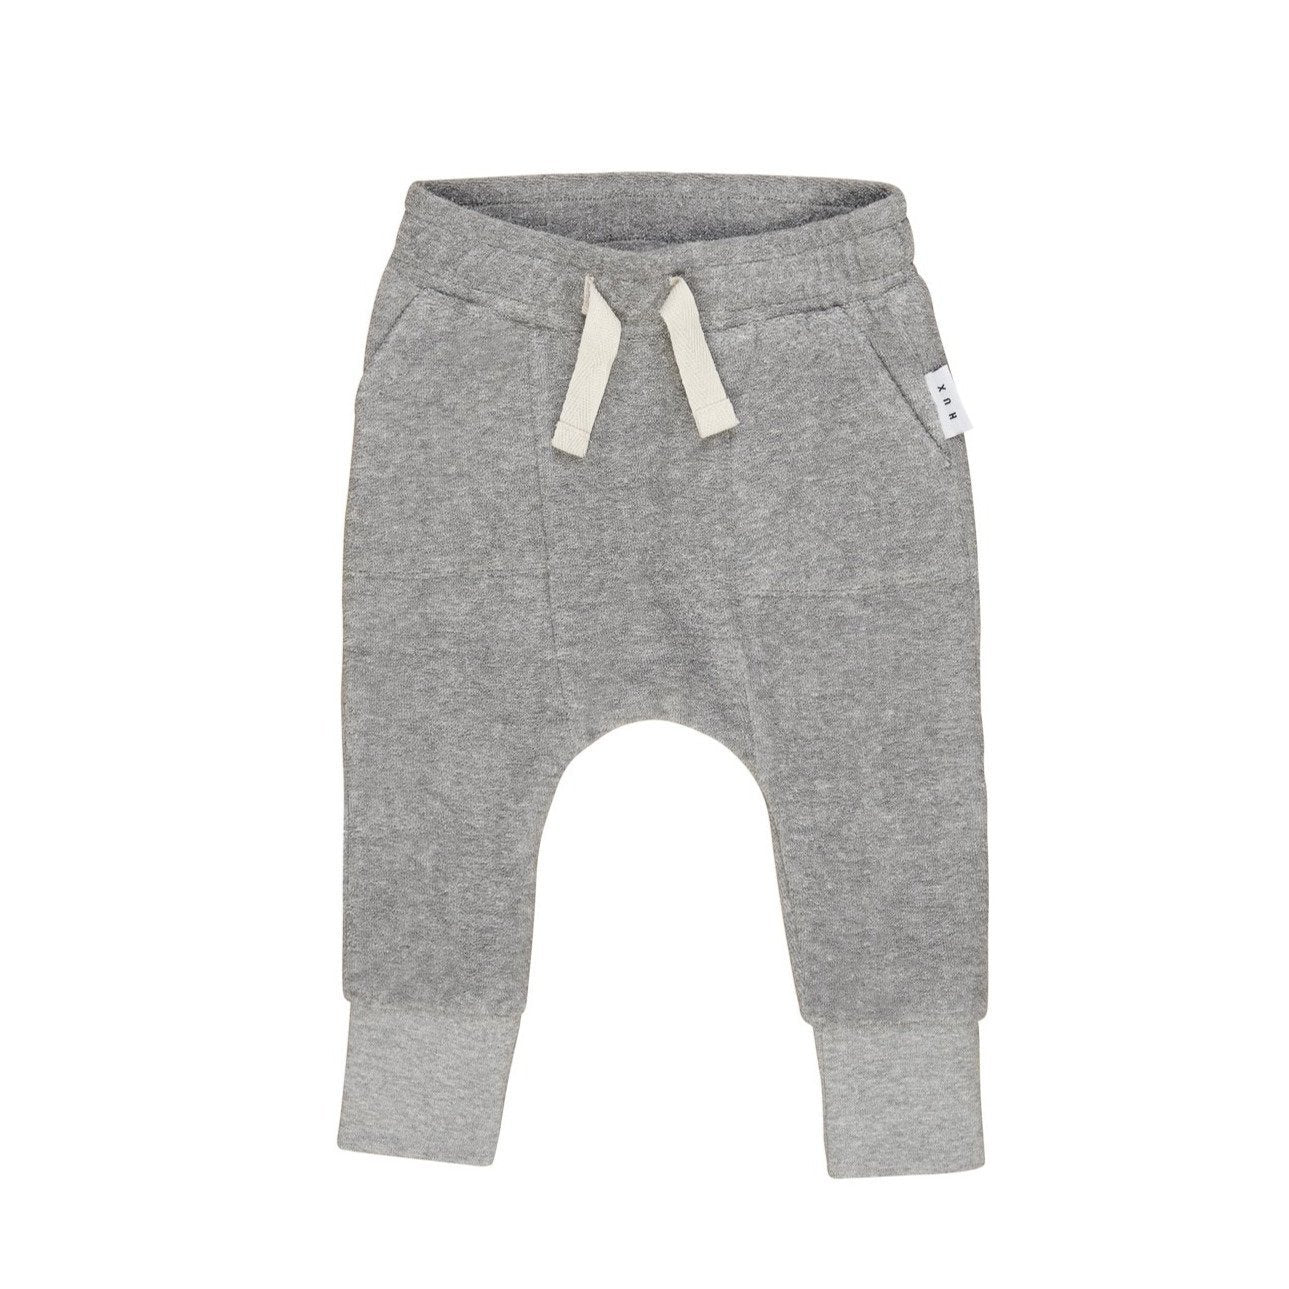 Grey Pocket Drop Crutch Pants